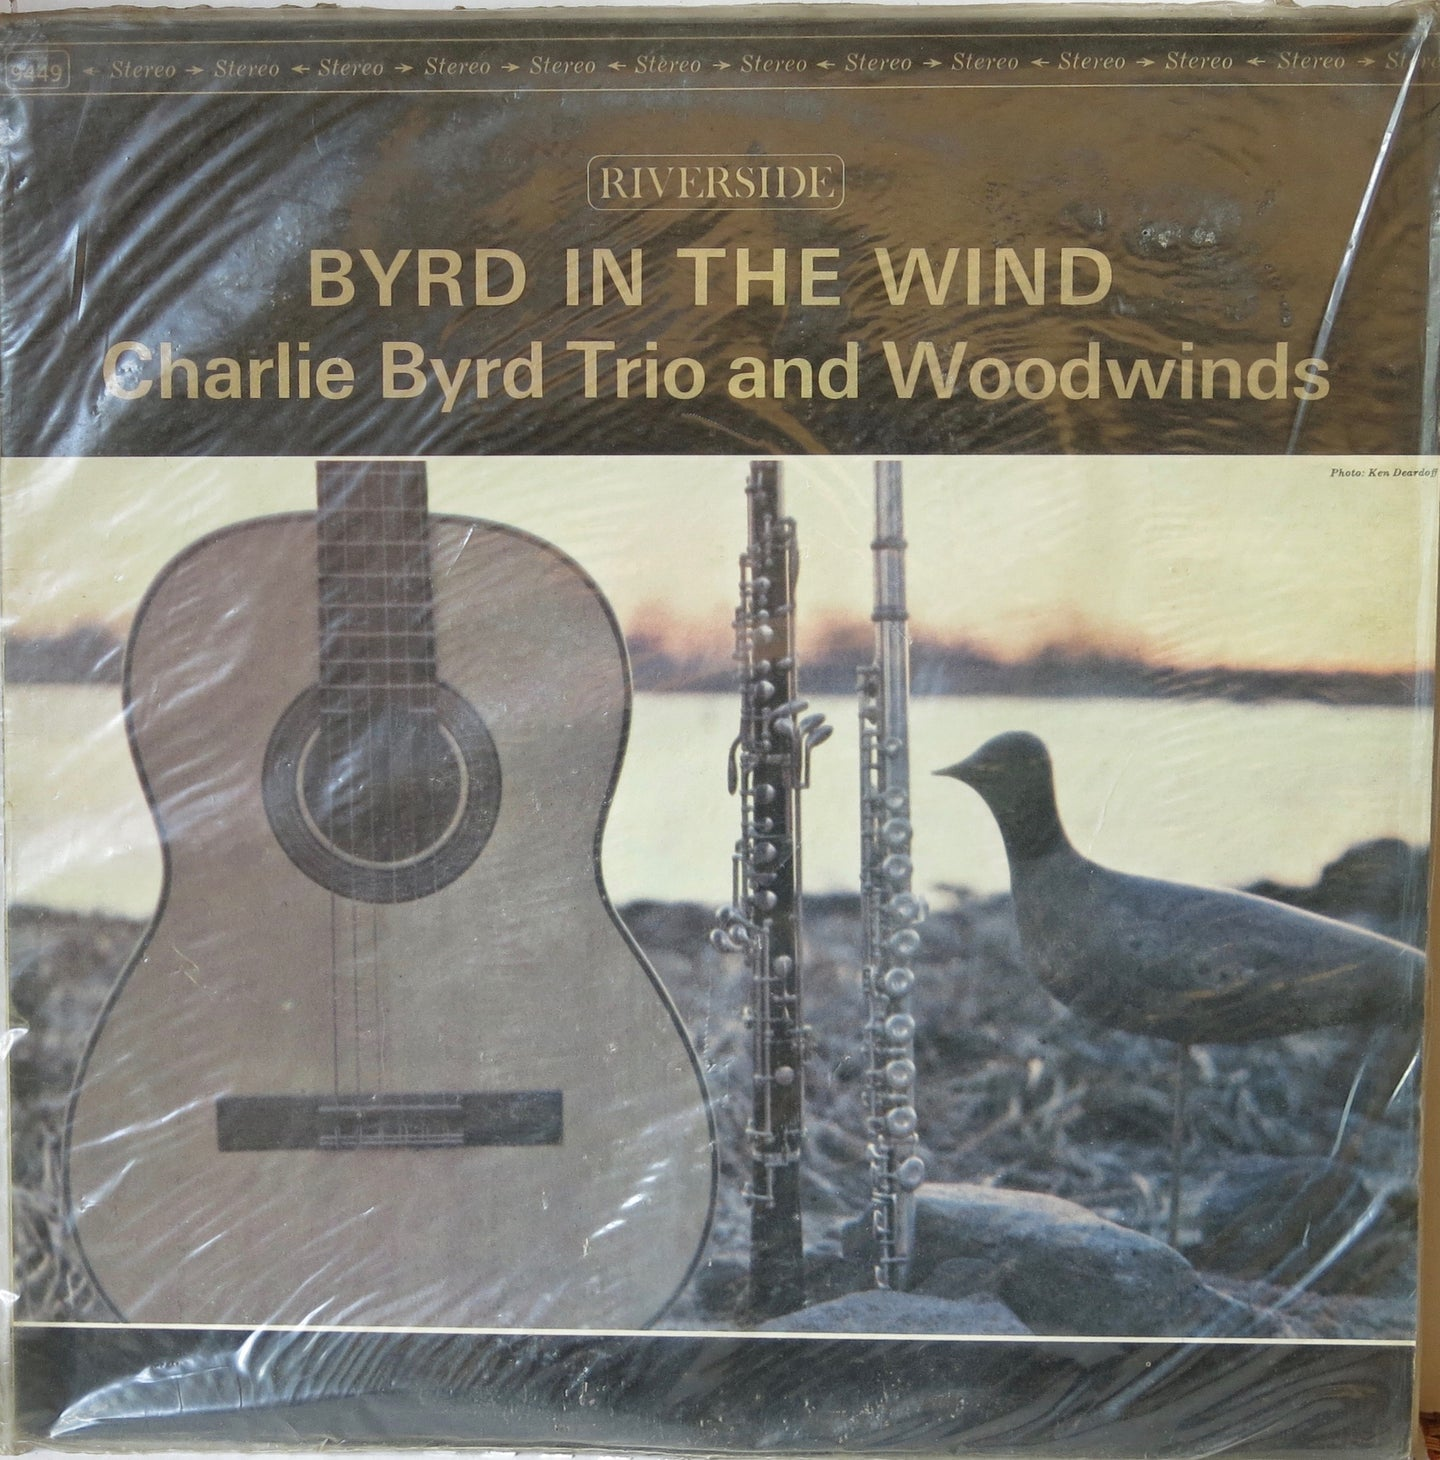 Charlie Byrd Trio And Woodwinds ‎– Byrd In The Wind - Friedman & Sons